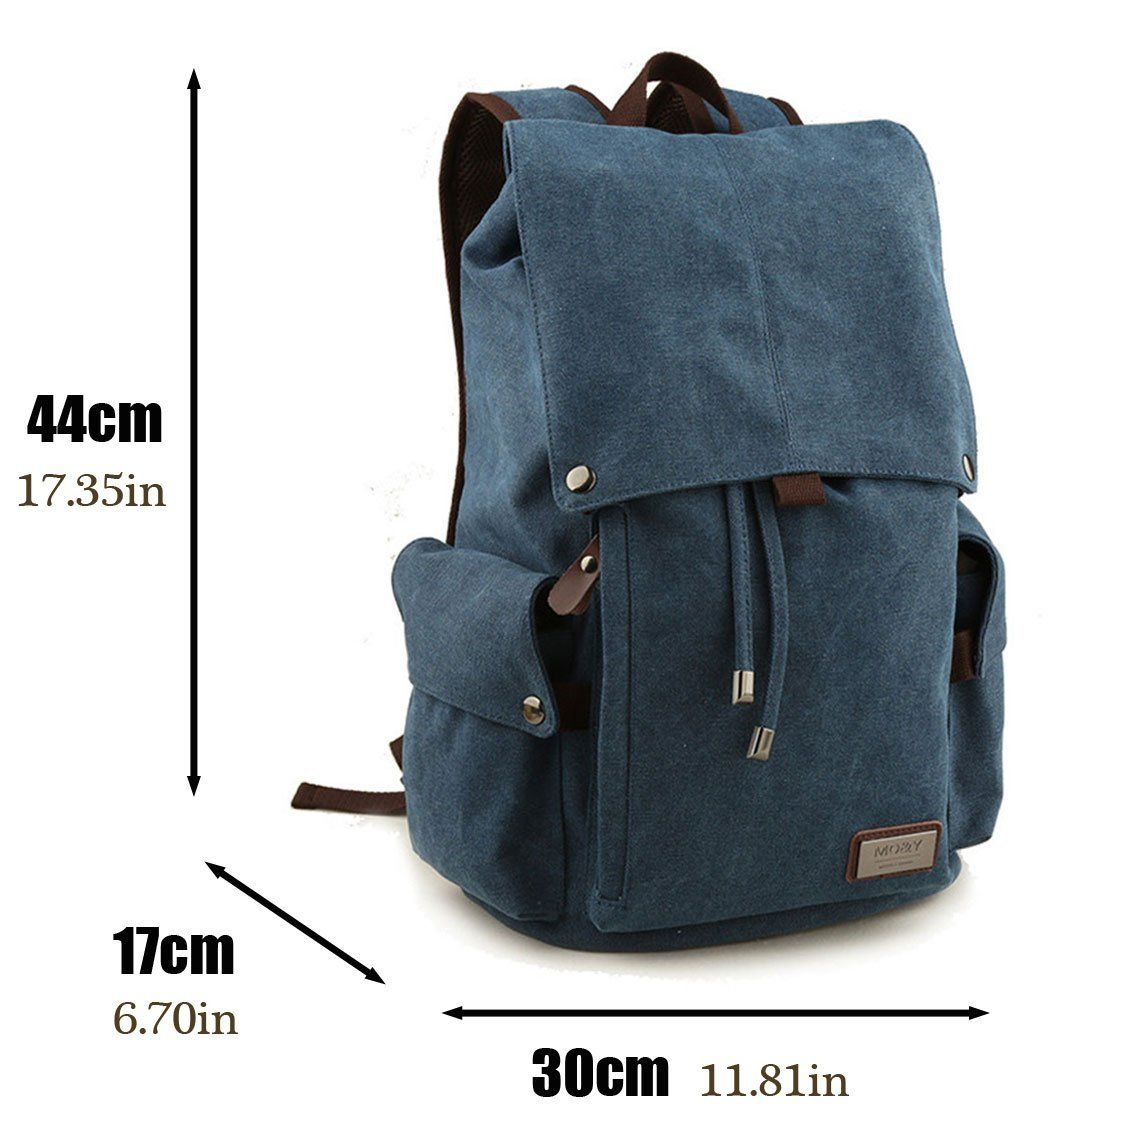 Mo Y Vintage Backpack Rucksack Casual Daypacks Bookbags